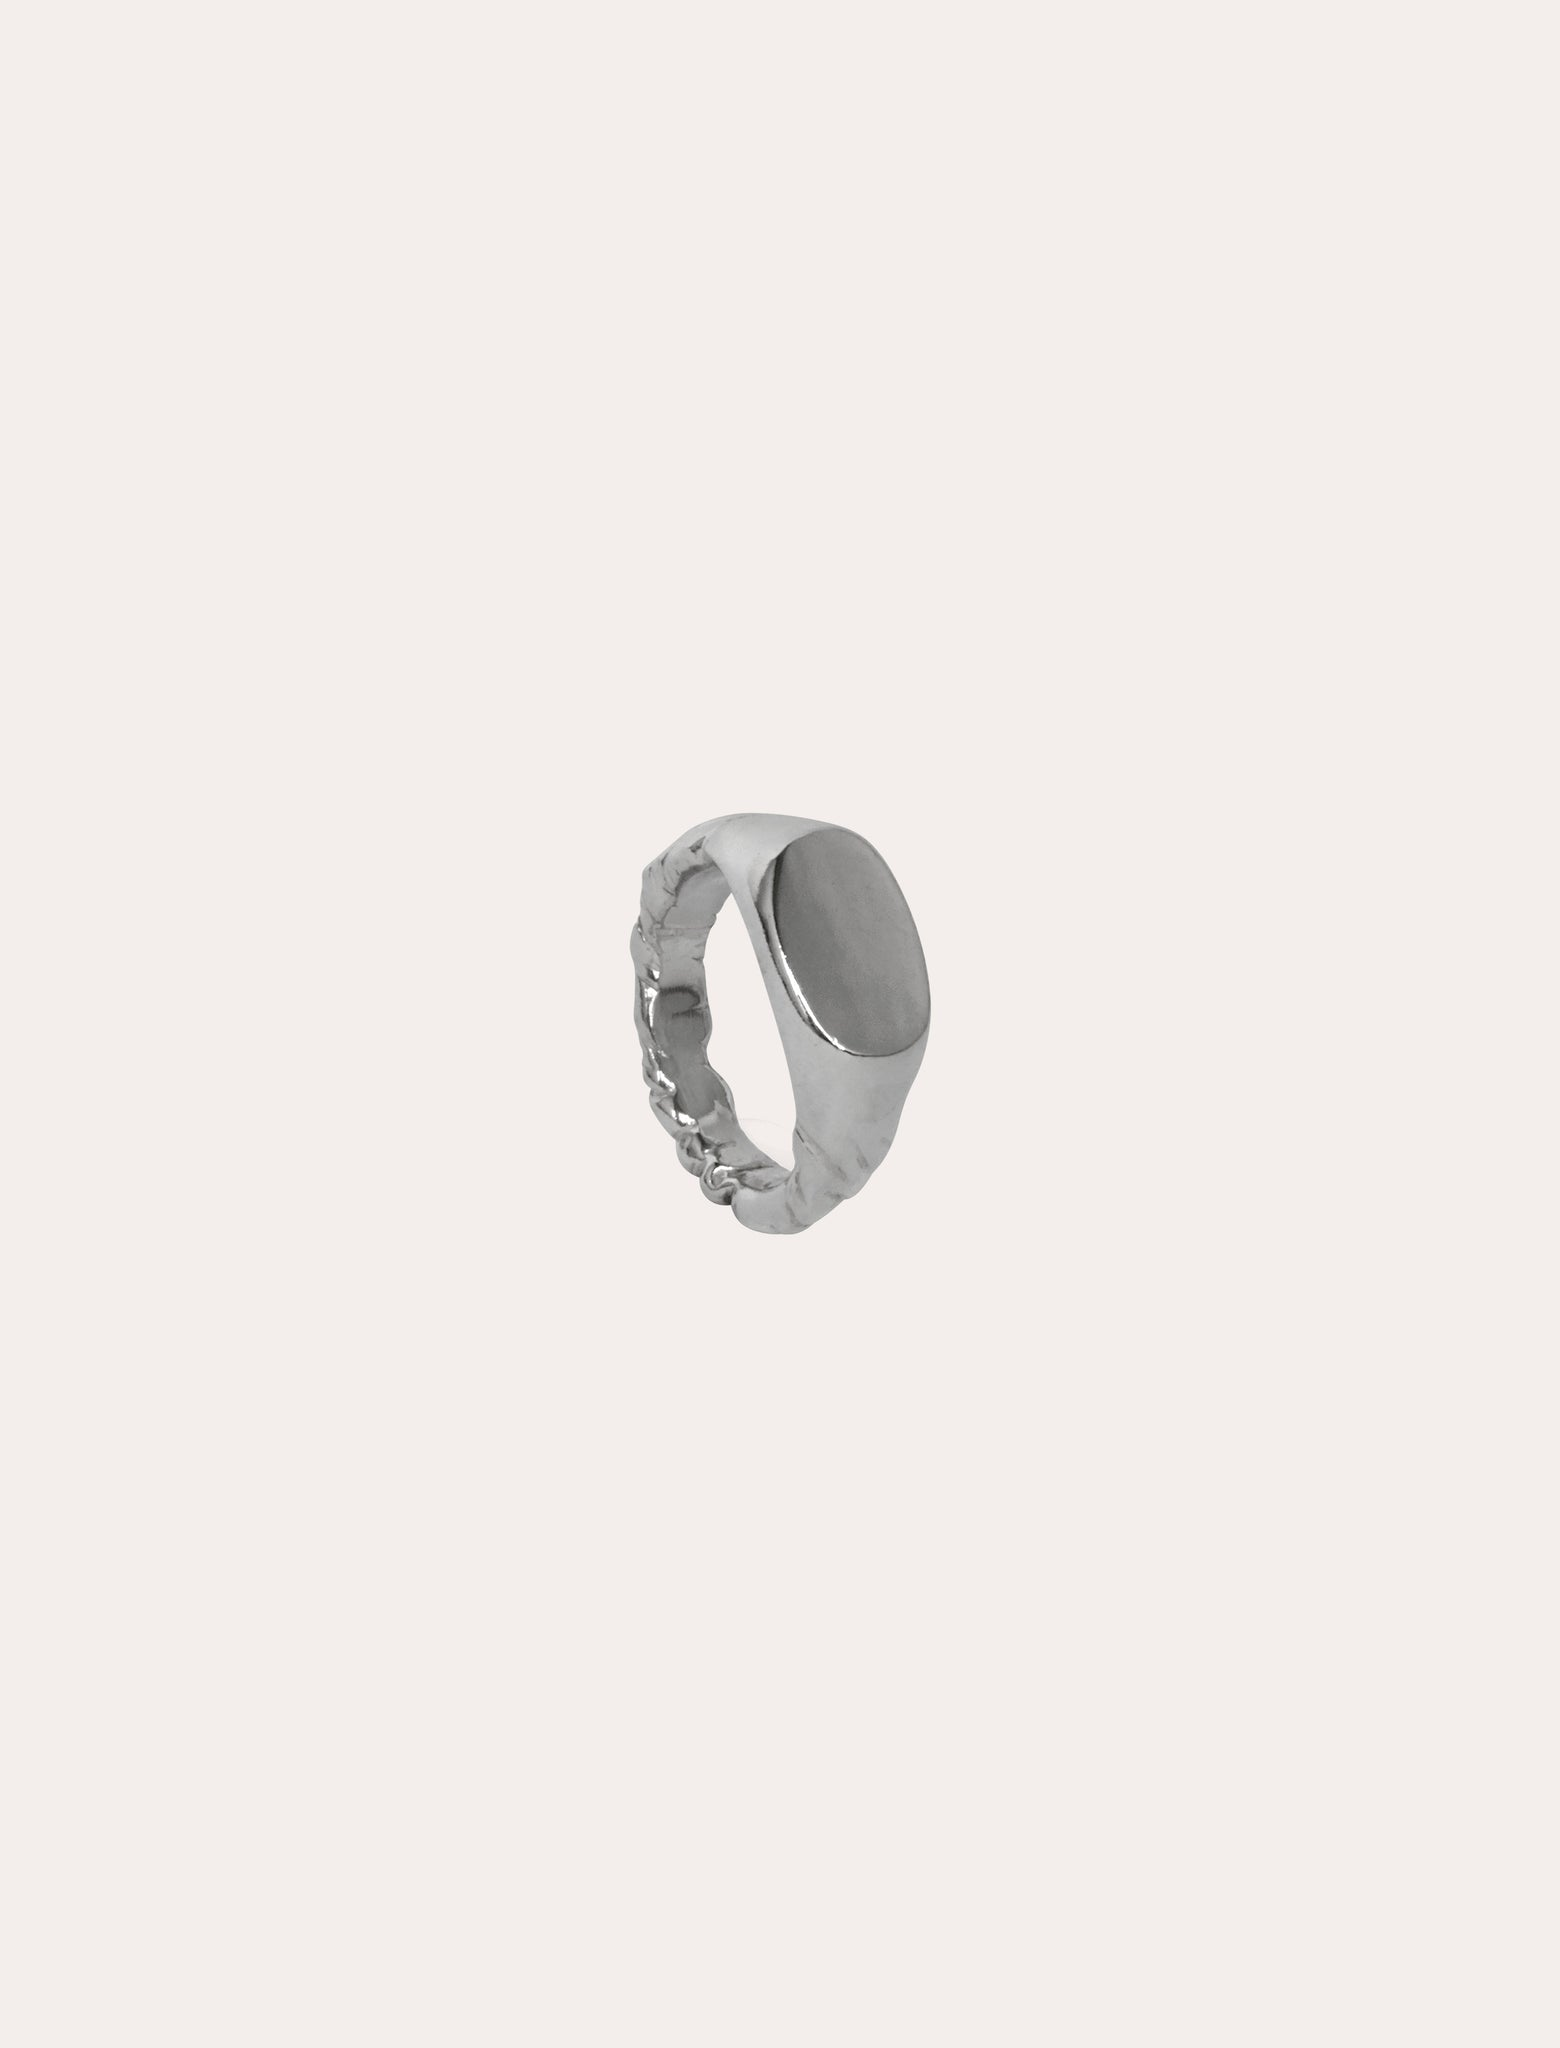 ANOTHER ASPECT x Corali, Koyubi Ring Sterling Silver